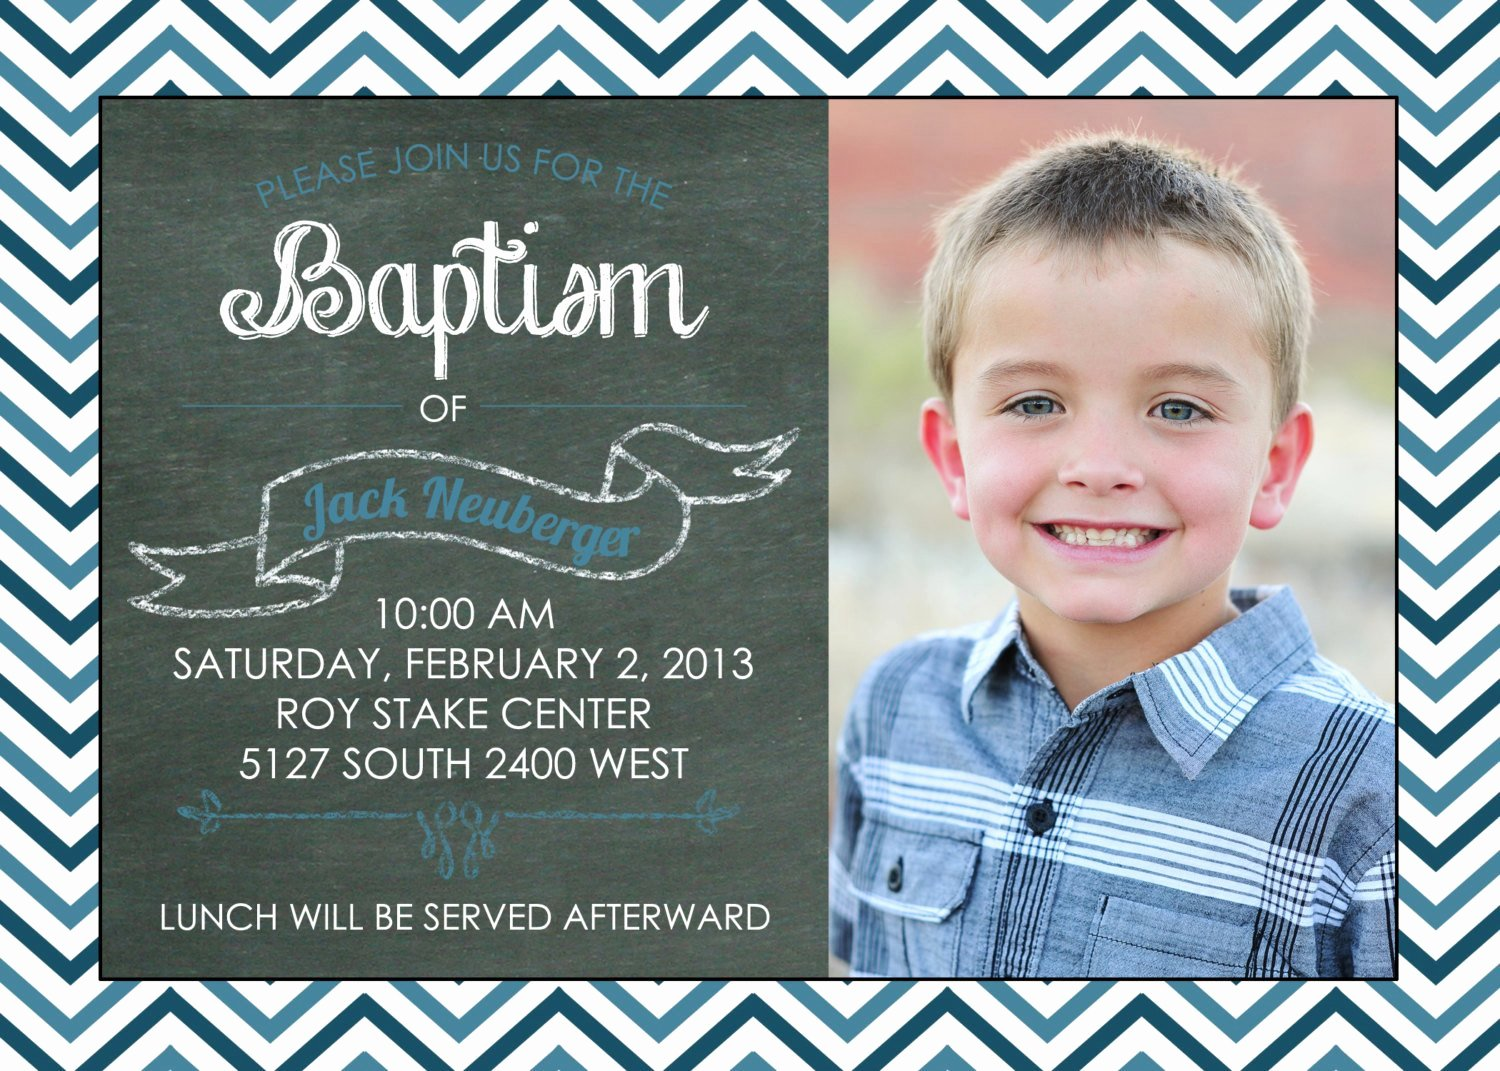 Lds Baptism Invitation Template Elegant Printable Chalkboard Baptism Invitation Lds by Brendaneuberger